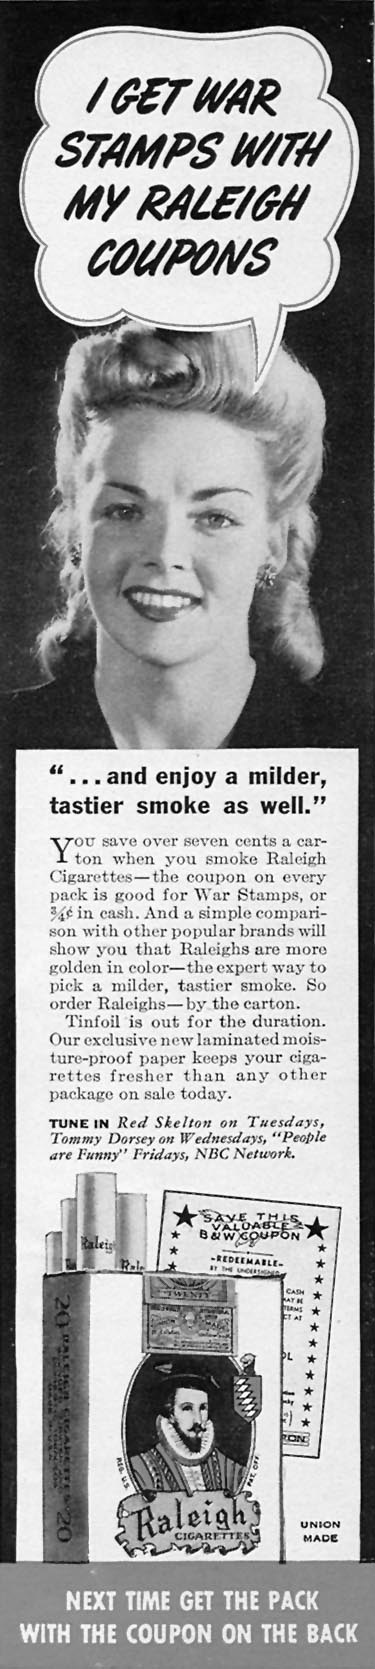 RALEIGH CIGARETTES